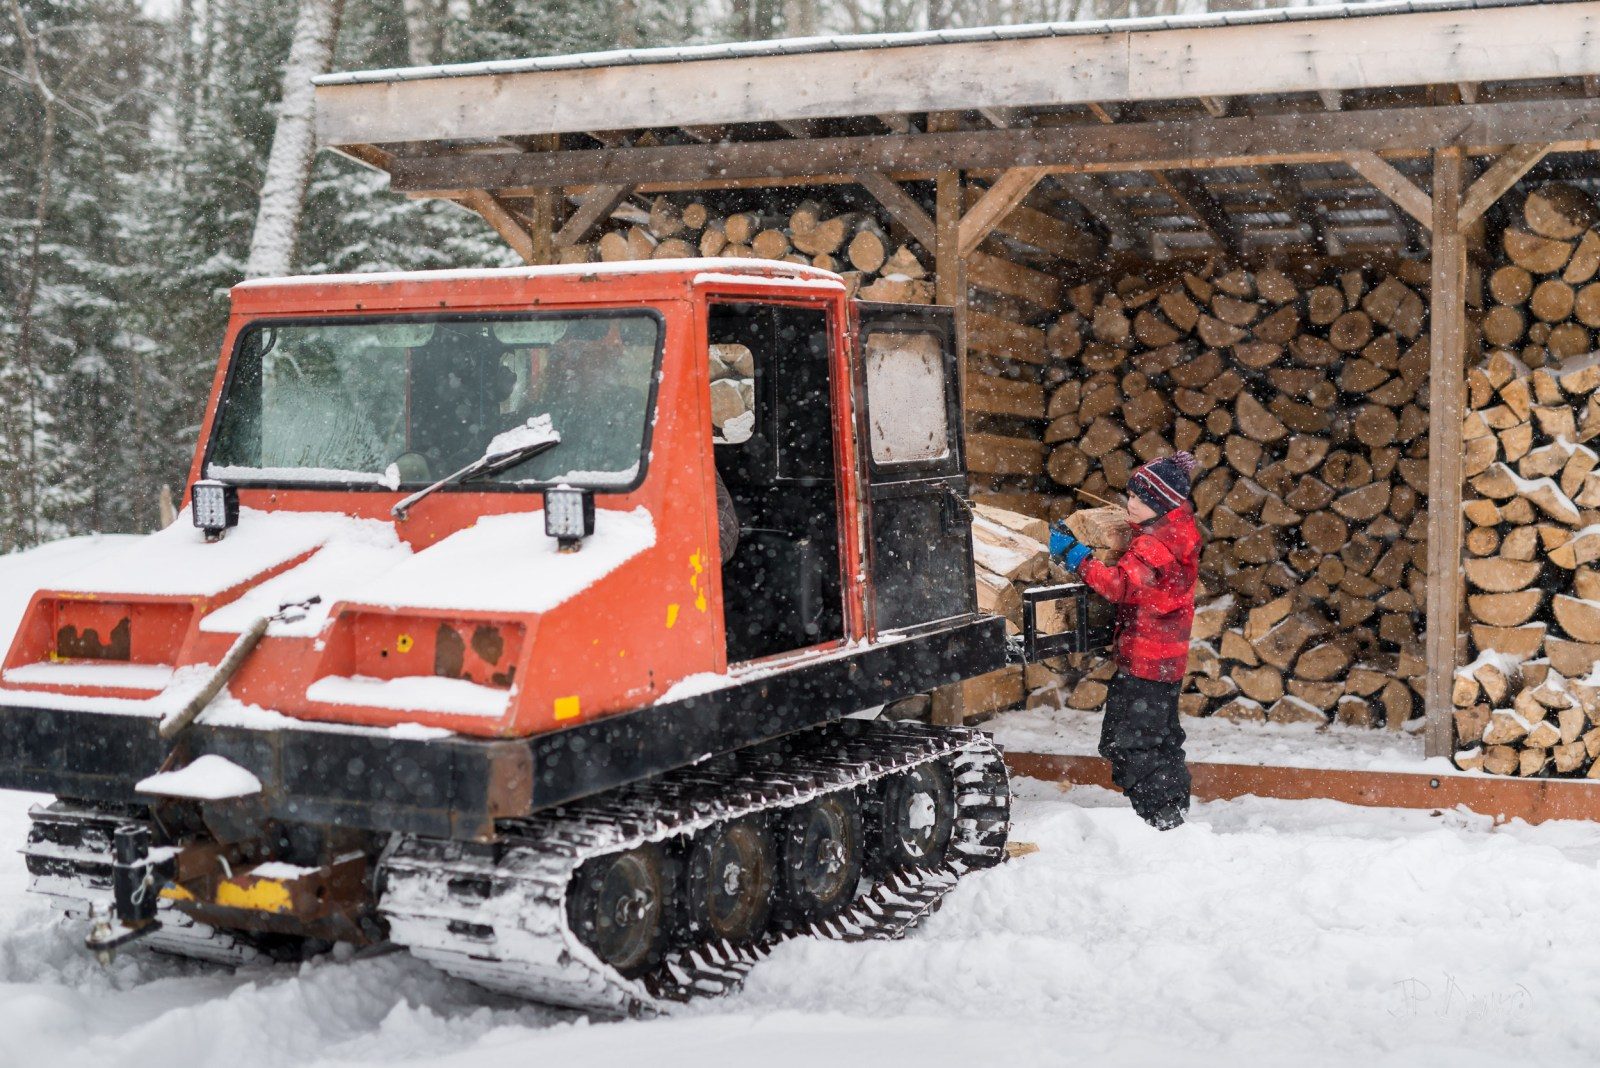 Snow falls as boy moves firewood from wood shed to bed of snow groomer machine